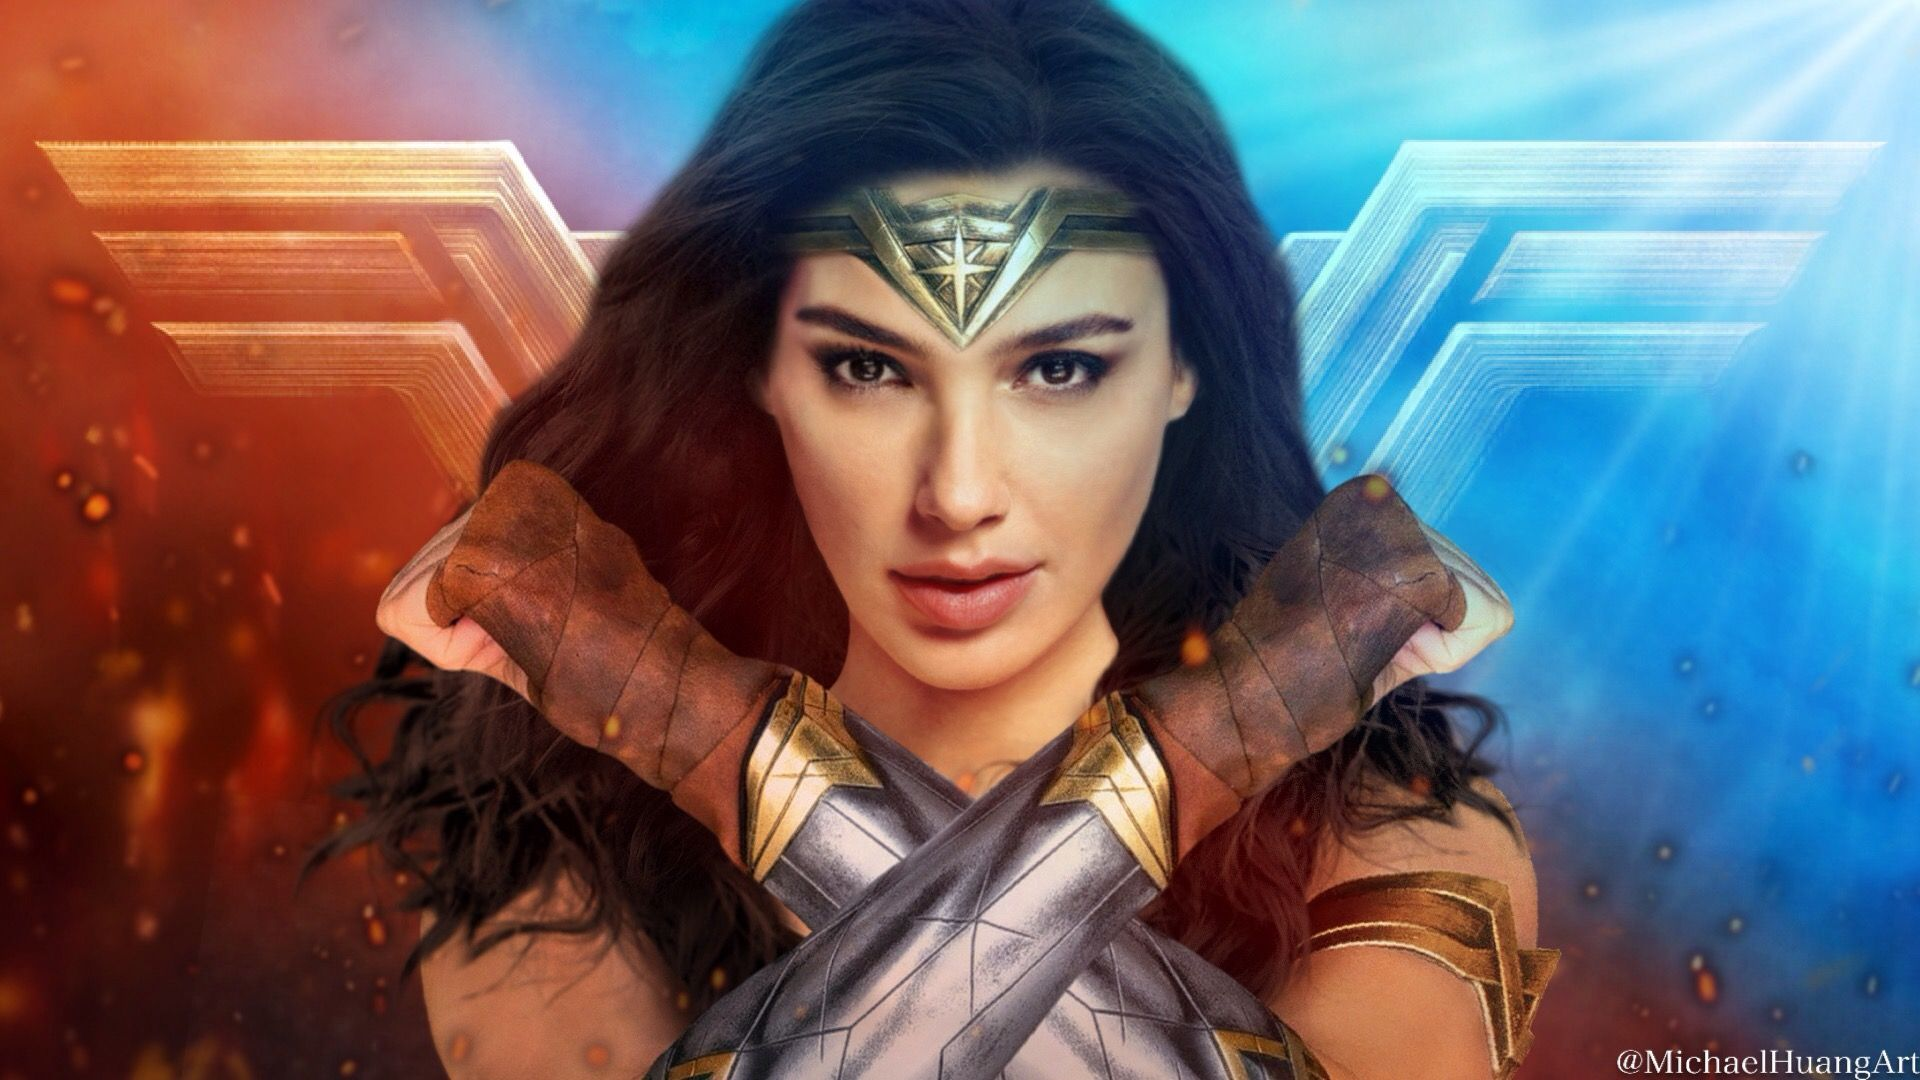 Wonderwoman Live Wallpaper: [1920x1080] Wonder Woman Wallpaper